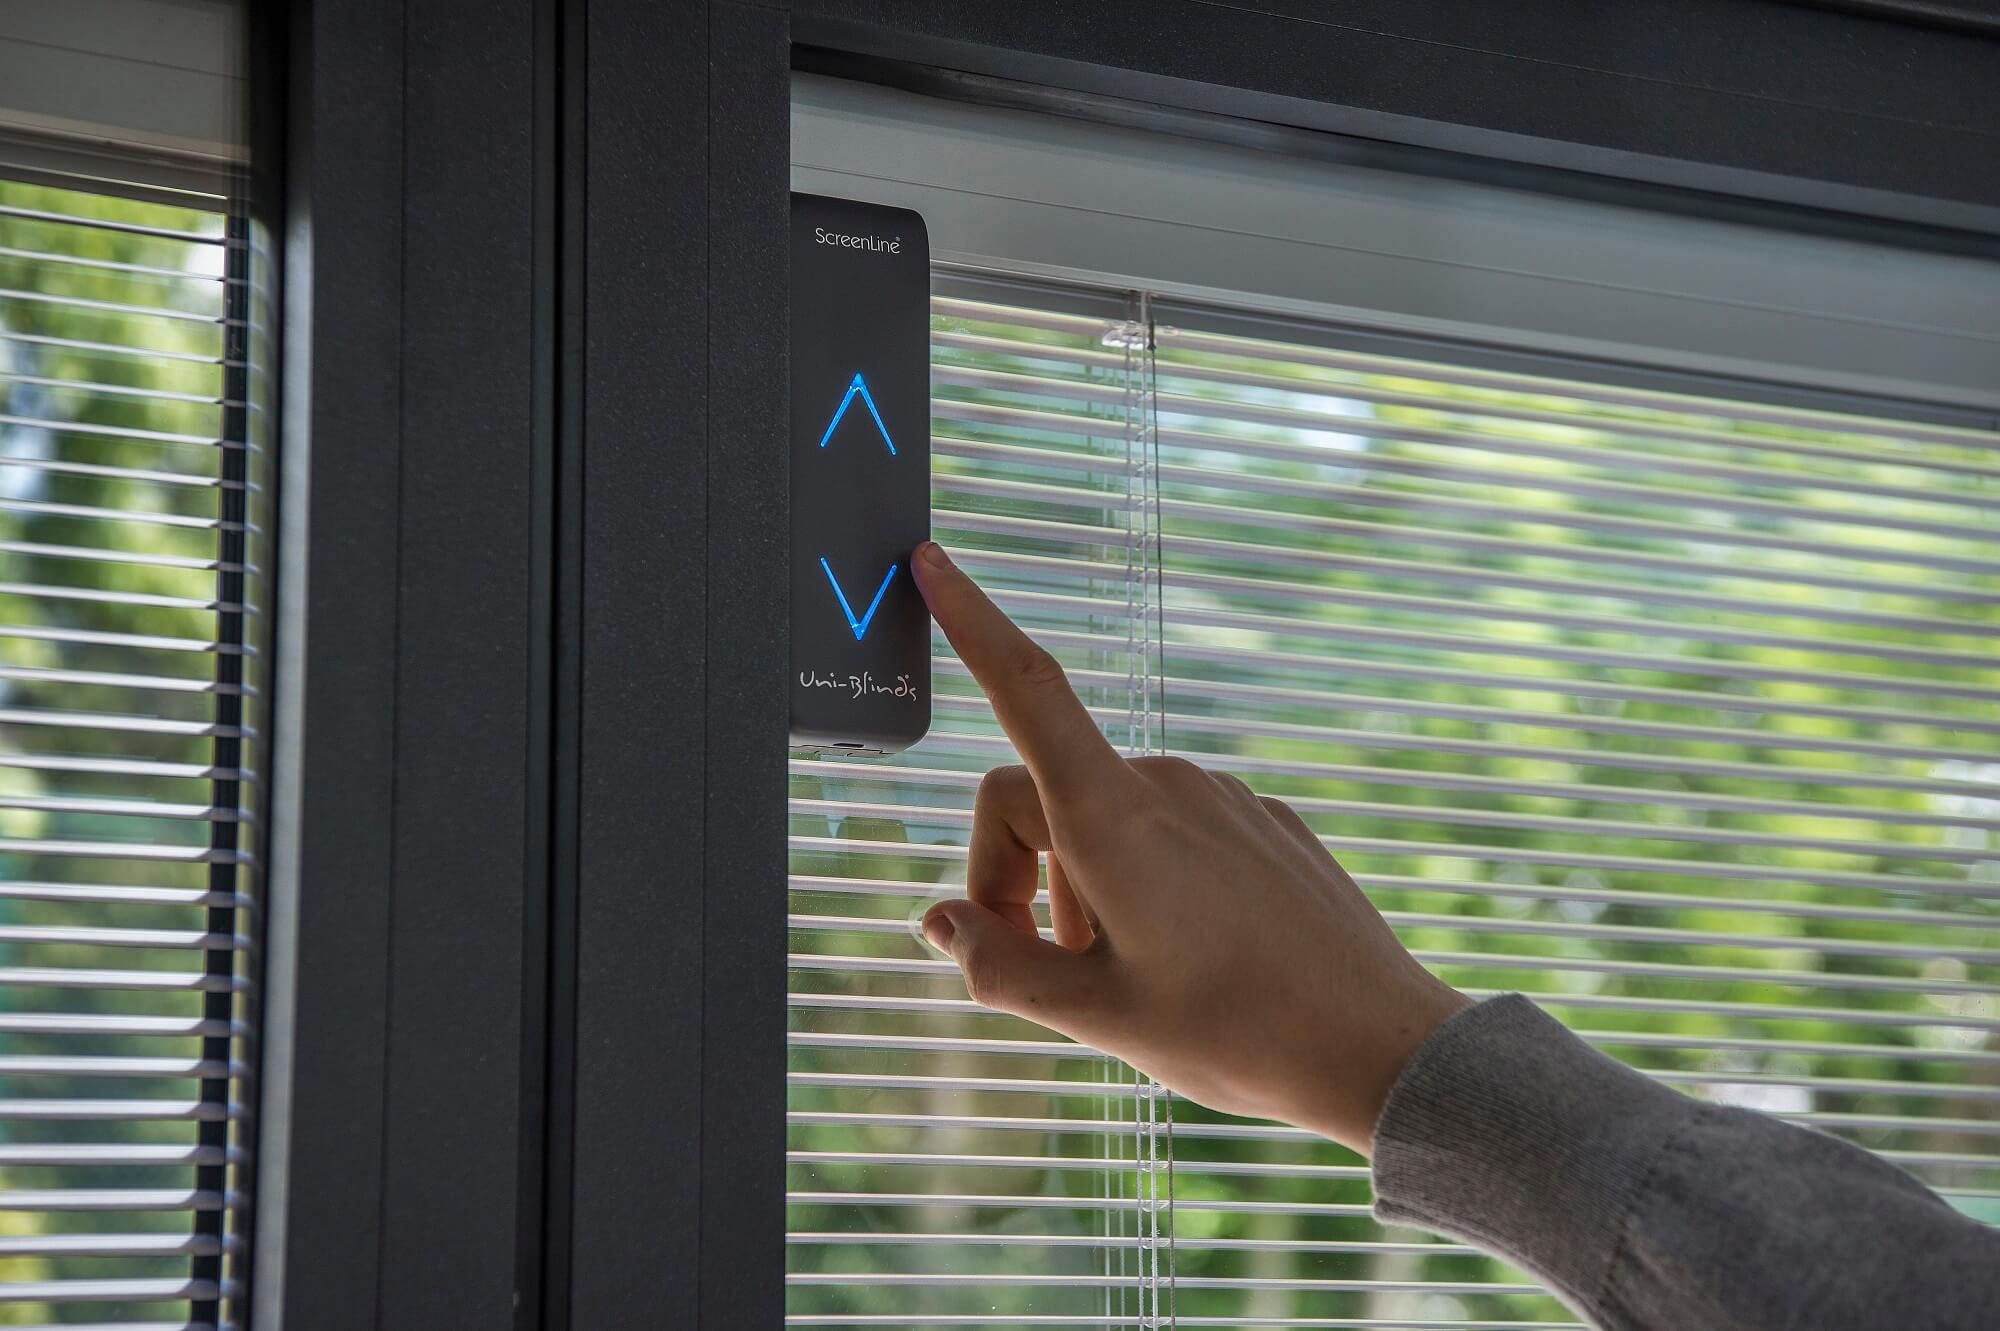 Solar controlled blinds are the W Smart option